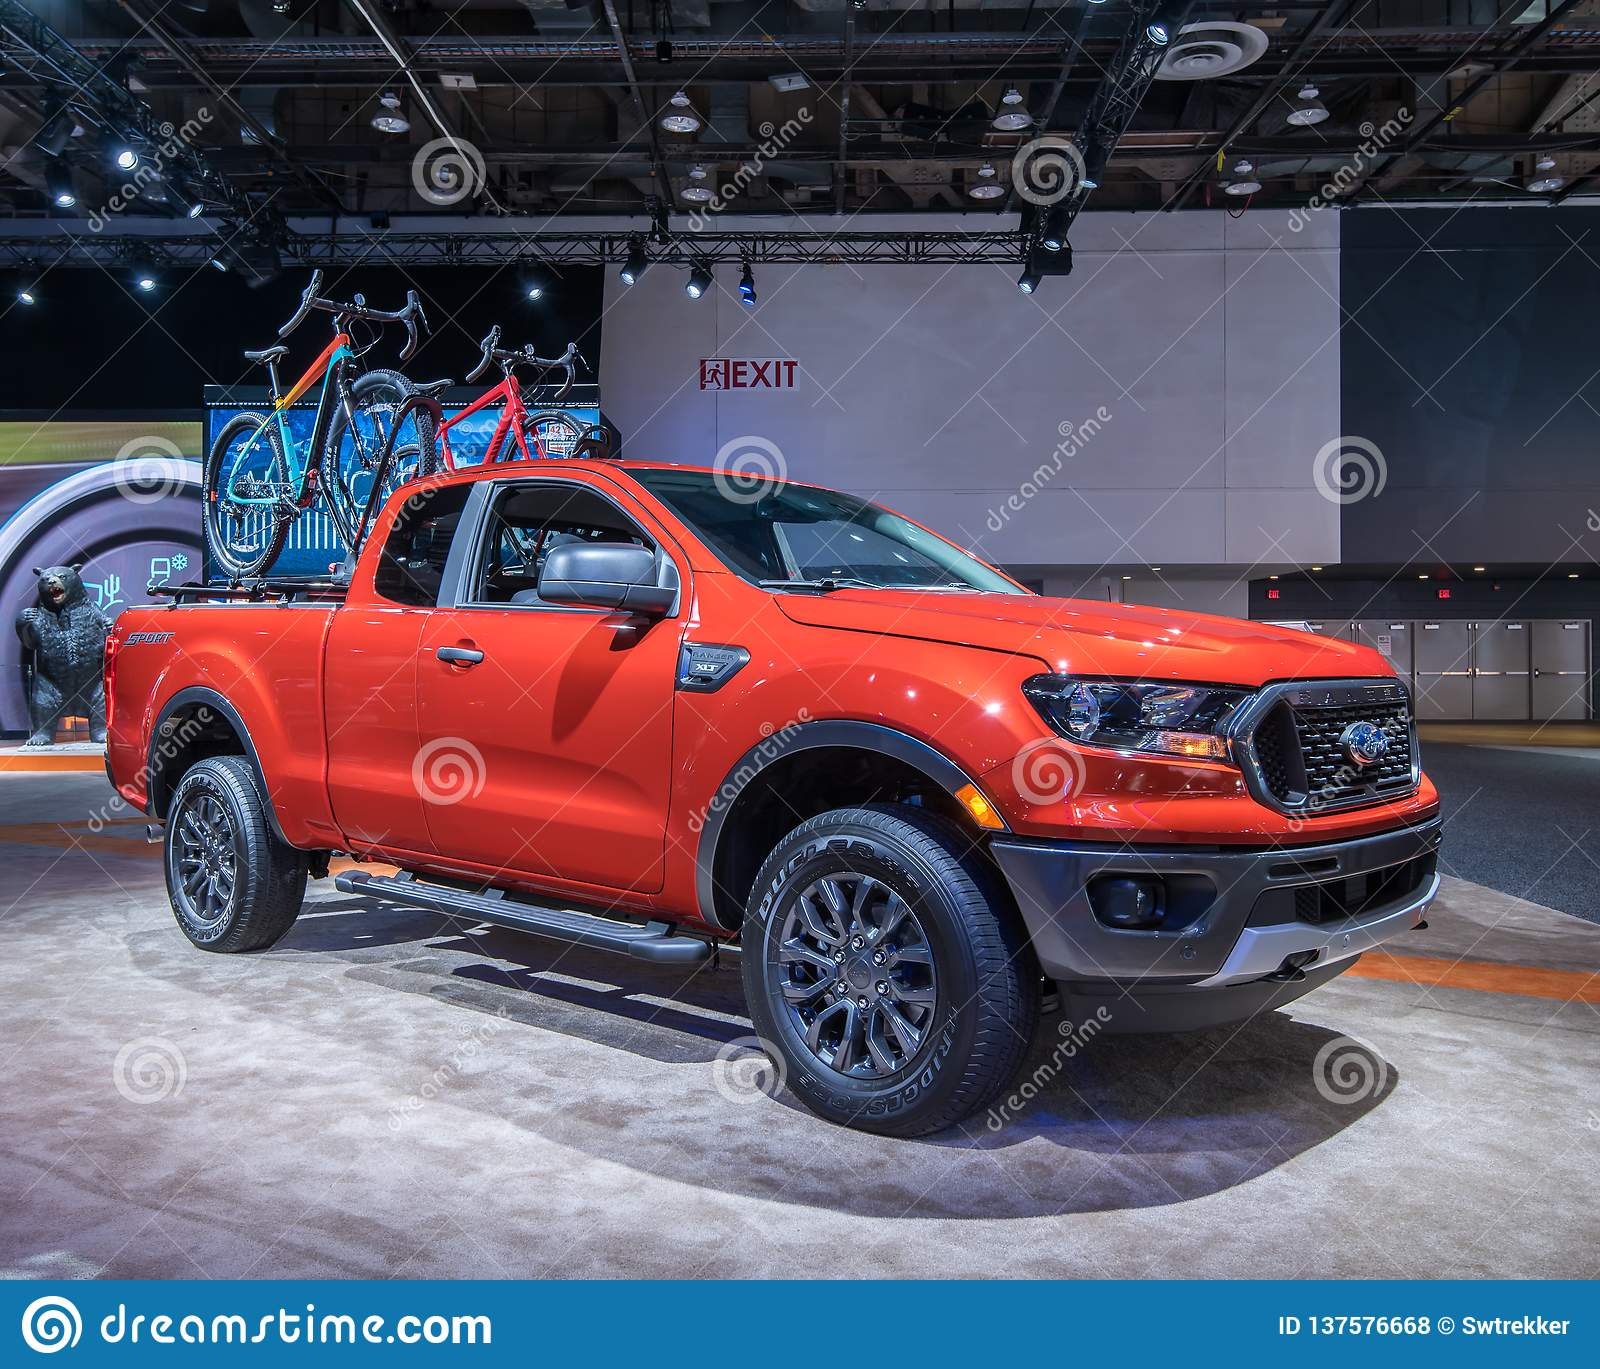 Ford Sport: 2019 Ford Ranger XLT Sport Editorial Stock Photo. Image Of